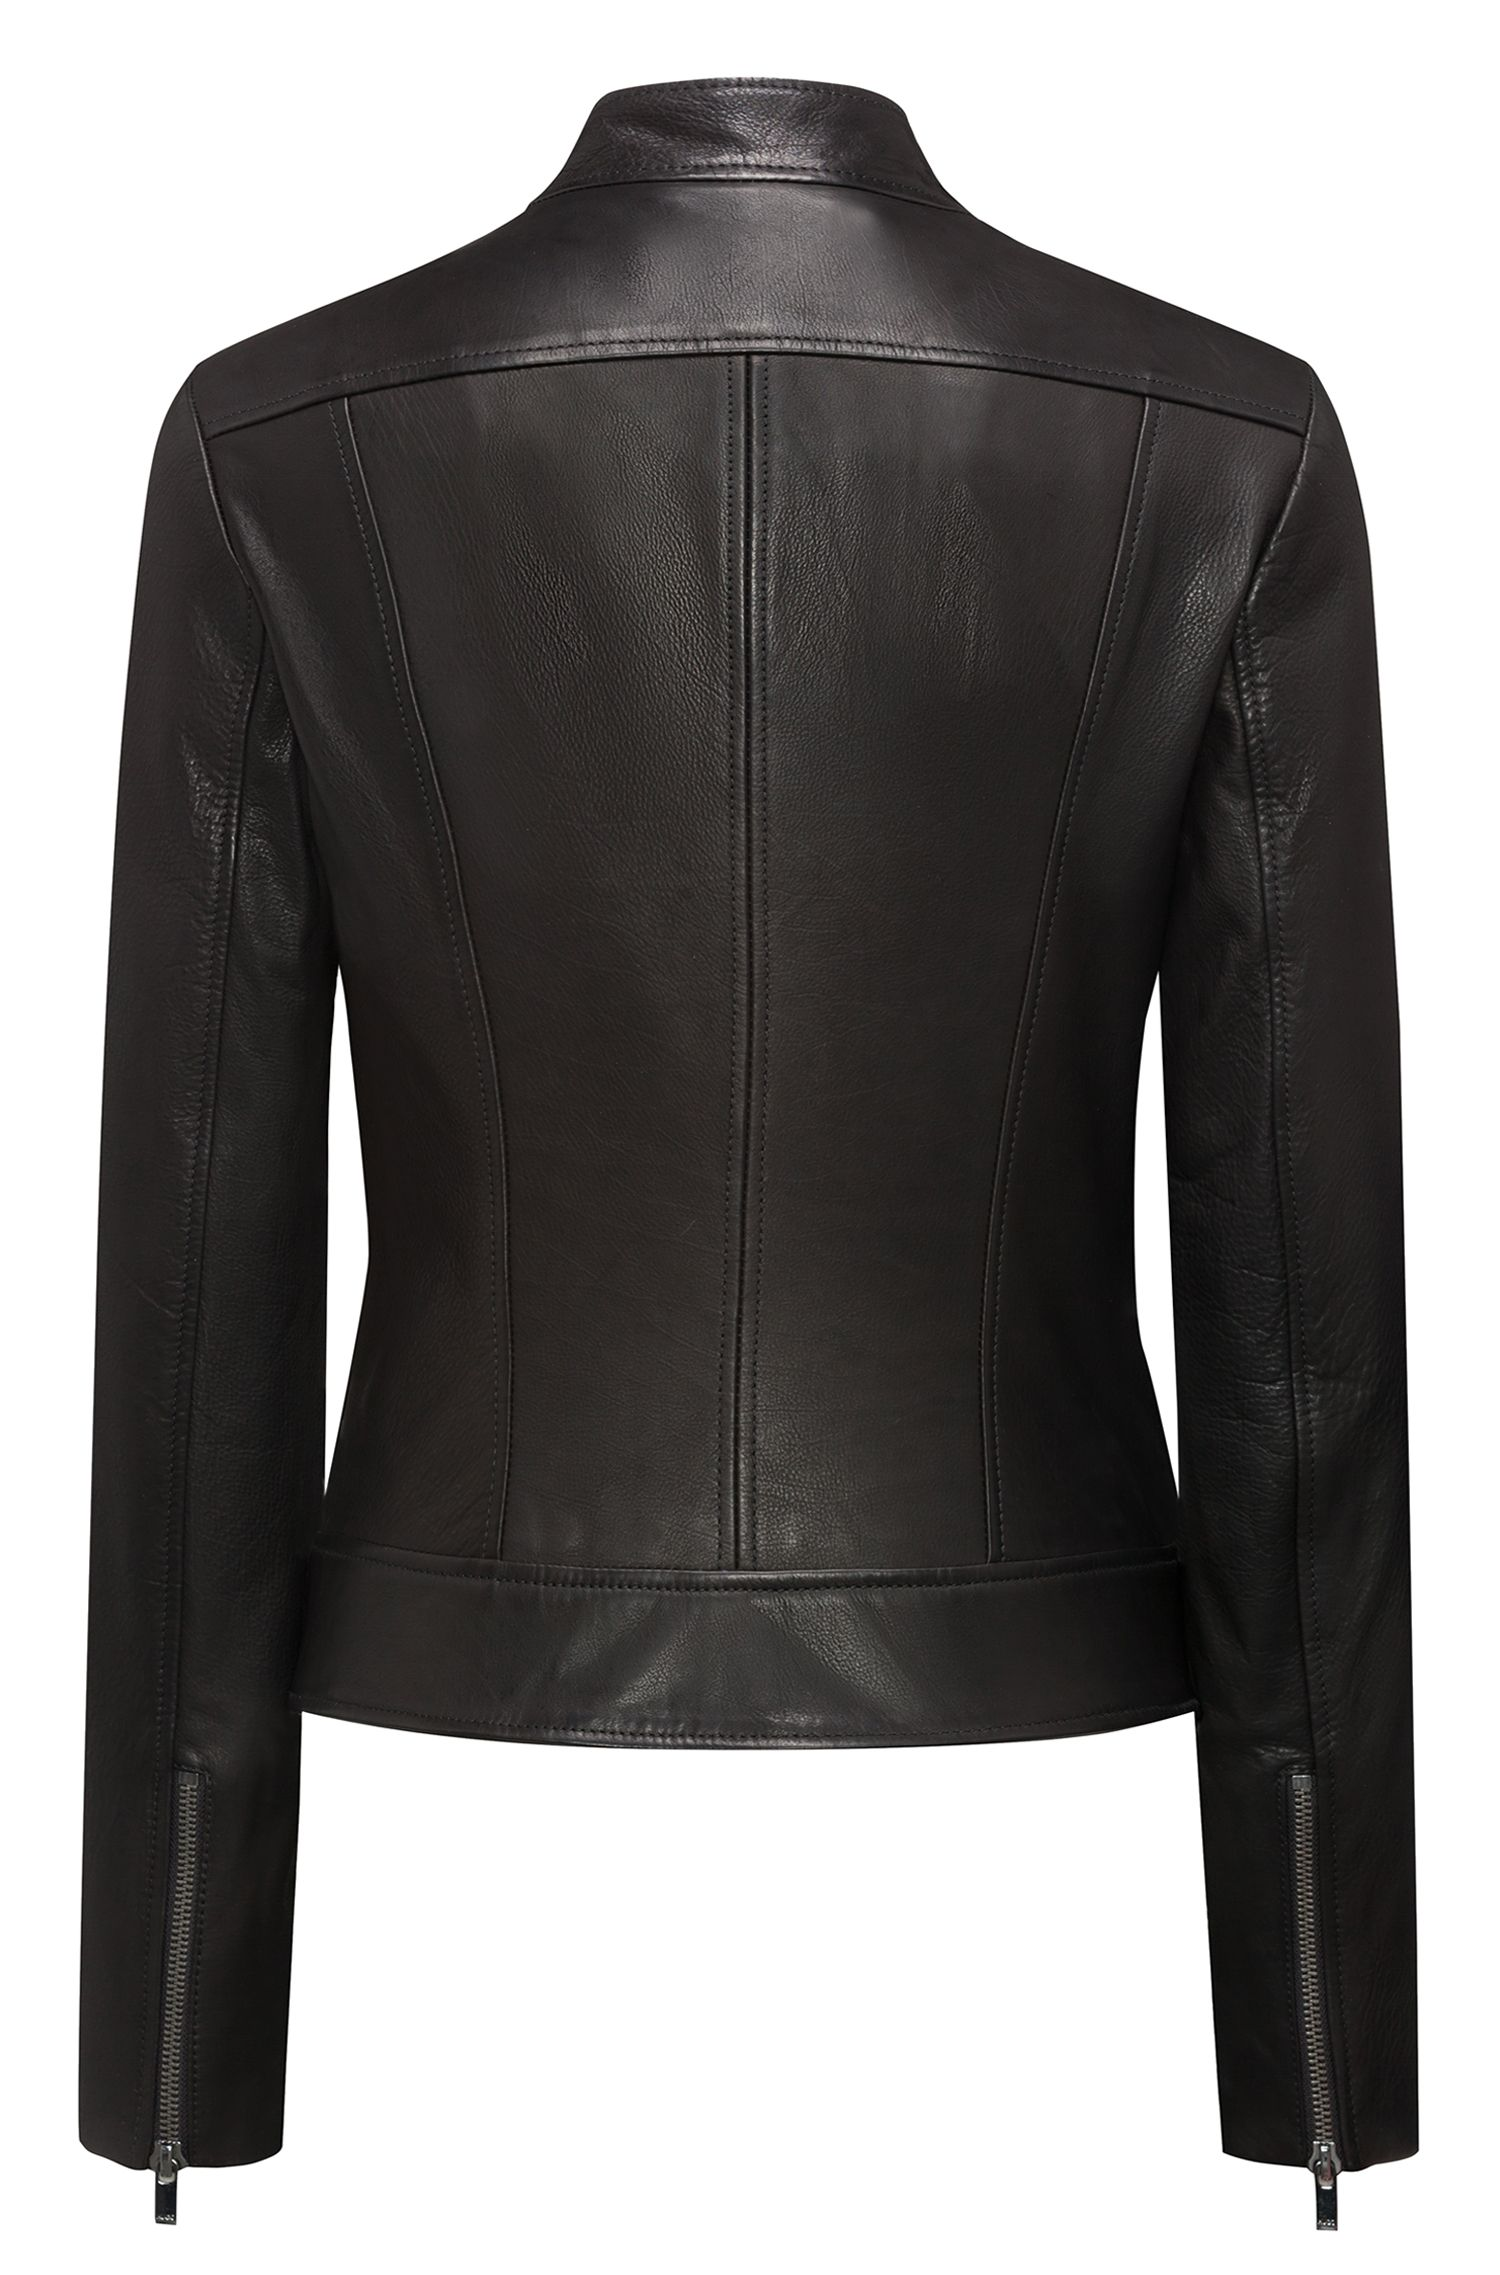 Biker jacket in calfskin leather with press-stud closures